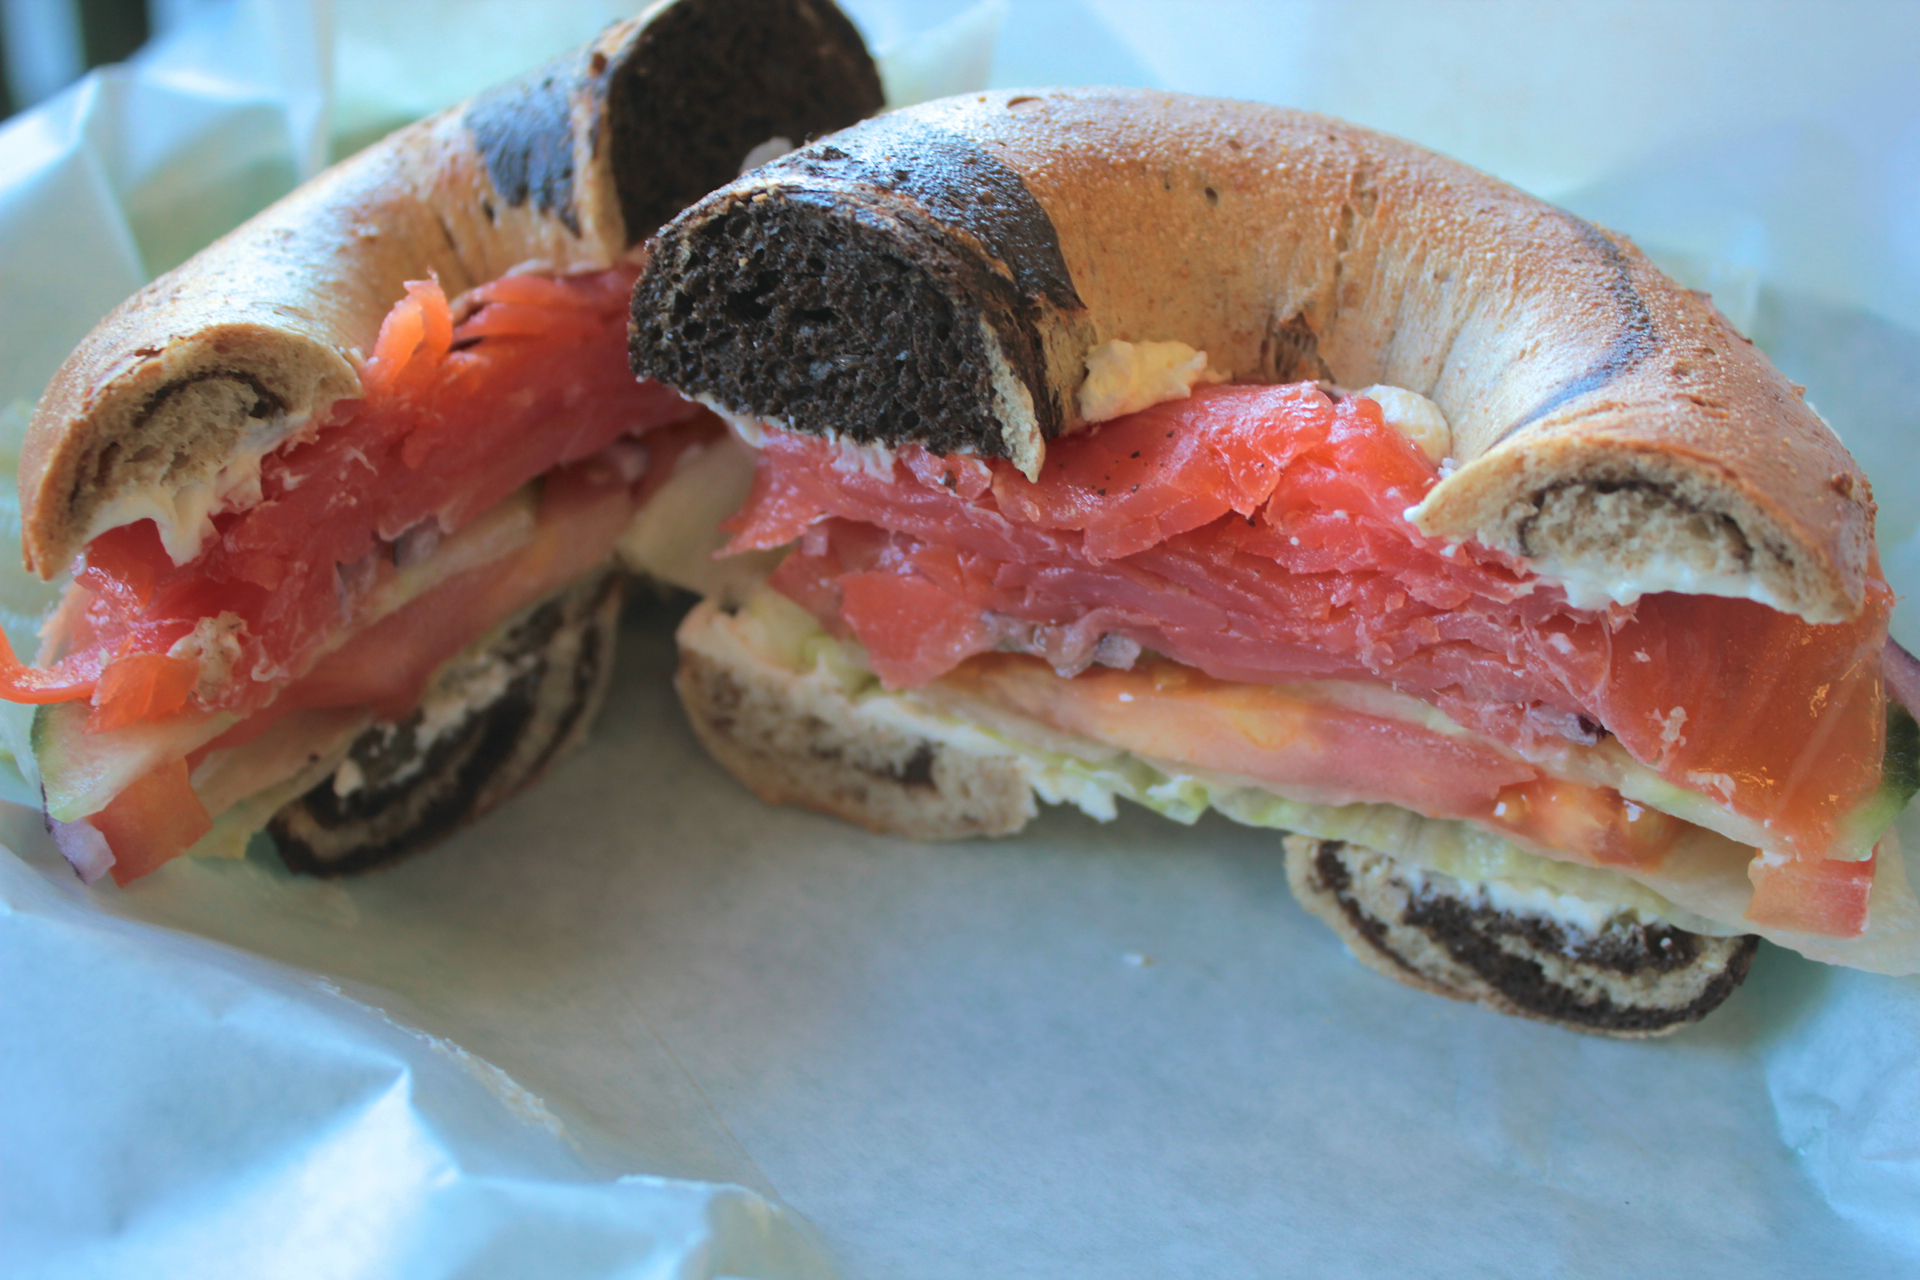 A lox sandwich on a pumpernickel-rye bagel at Saratoga Bagels.